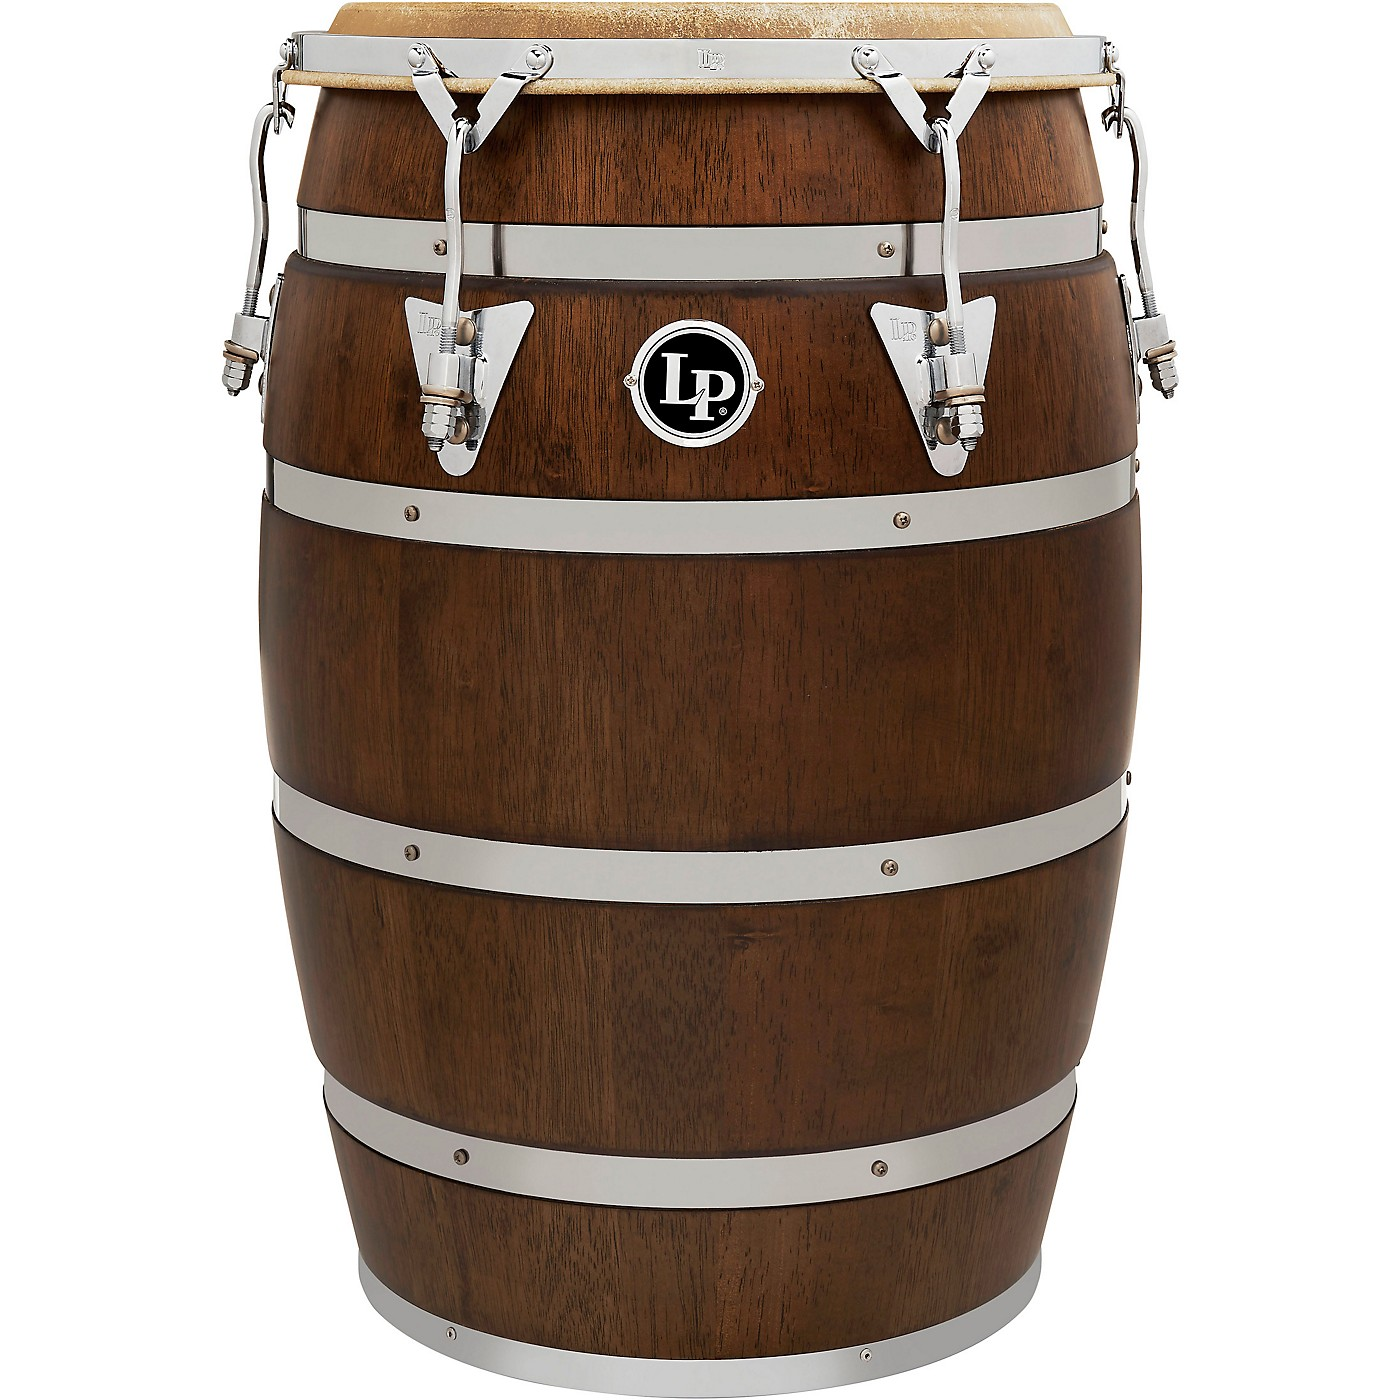 LP 14 In. Siam Oak Barril De Bomba with Chrome Plated Hardware thumbnail